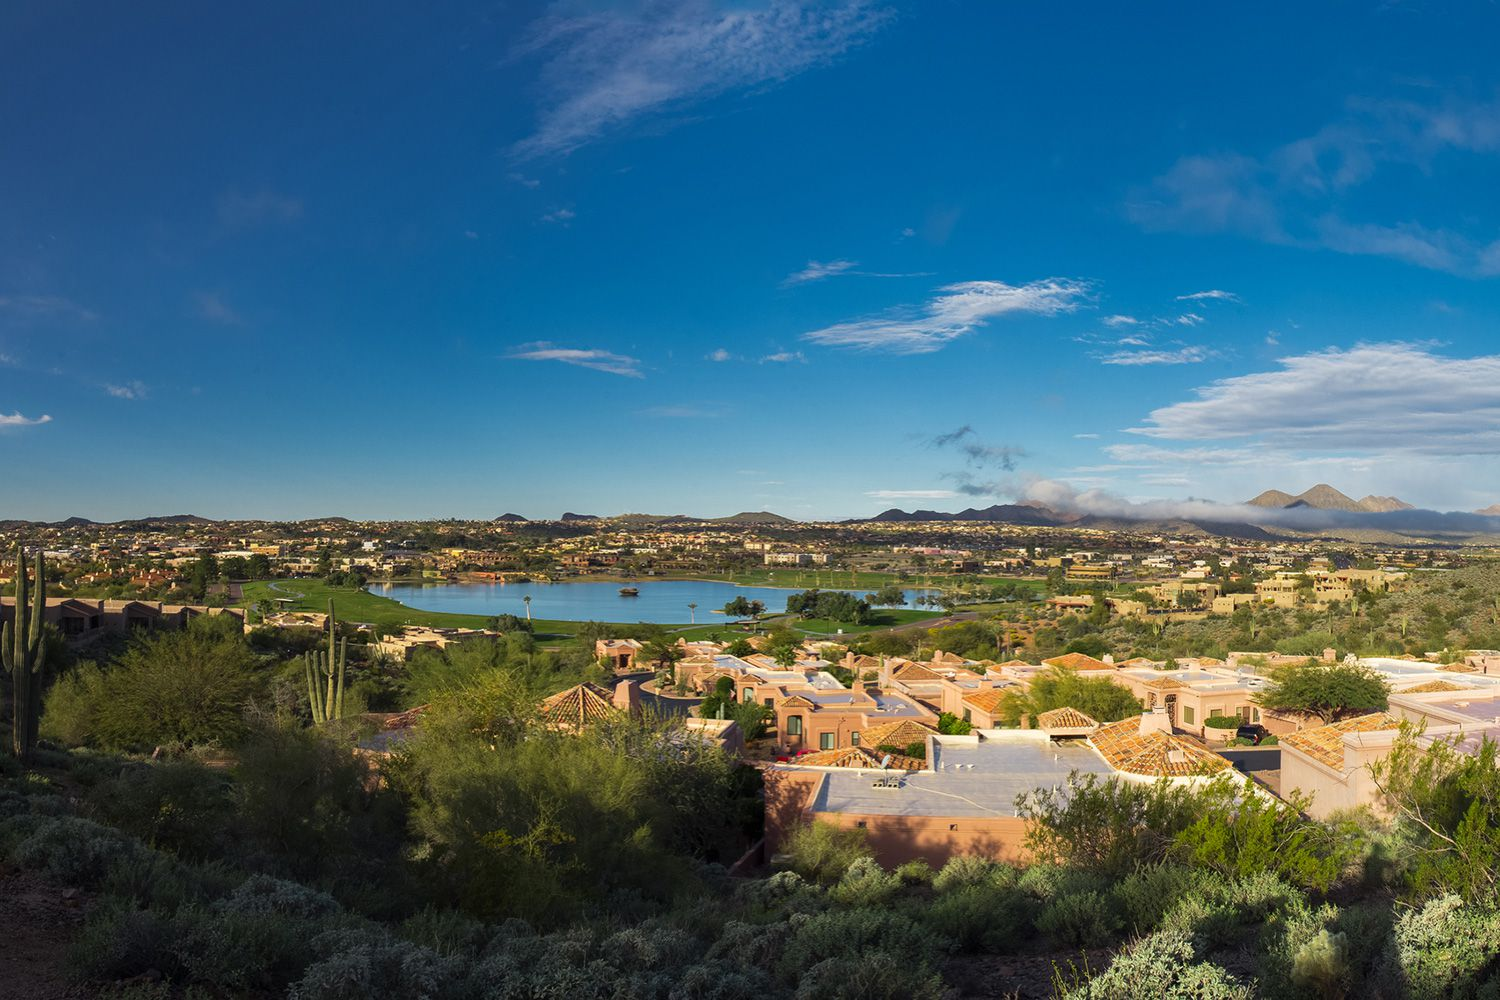 Things To Do And See In Fountain Hills Arizona